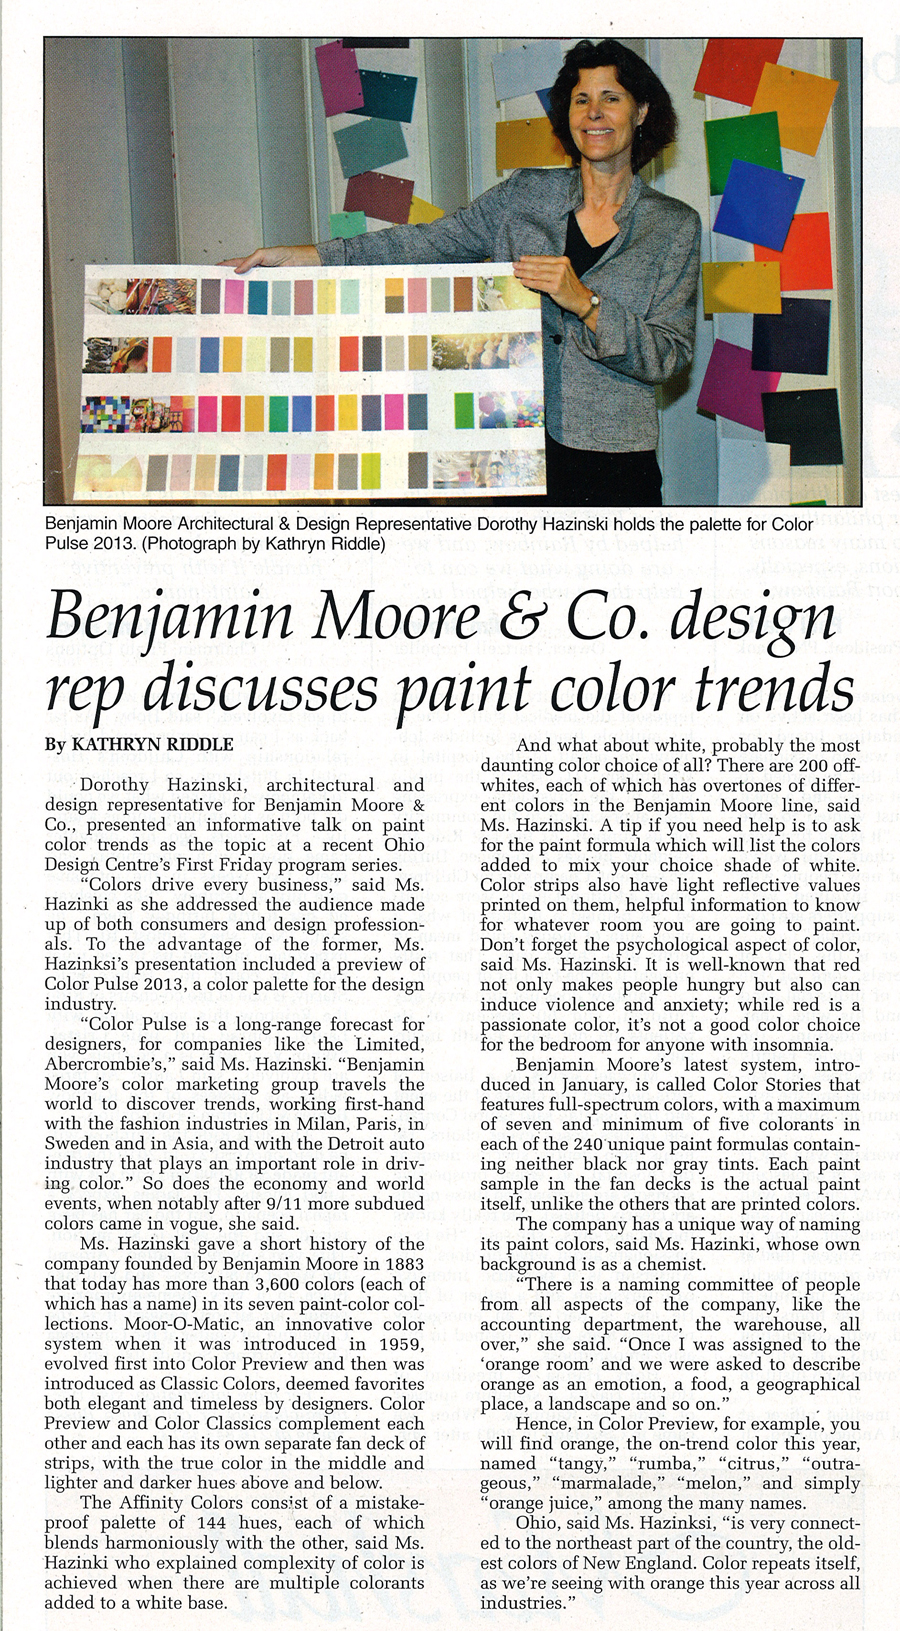 Benjamin Moore & Co. design rep discusses paint color trends